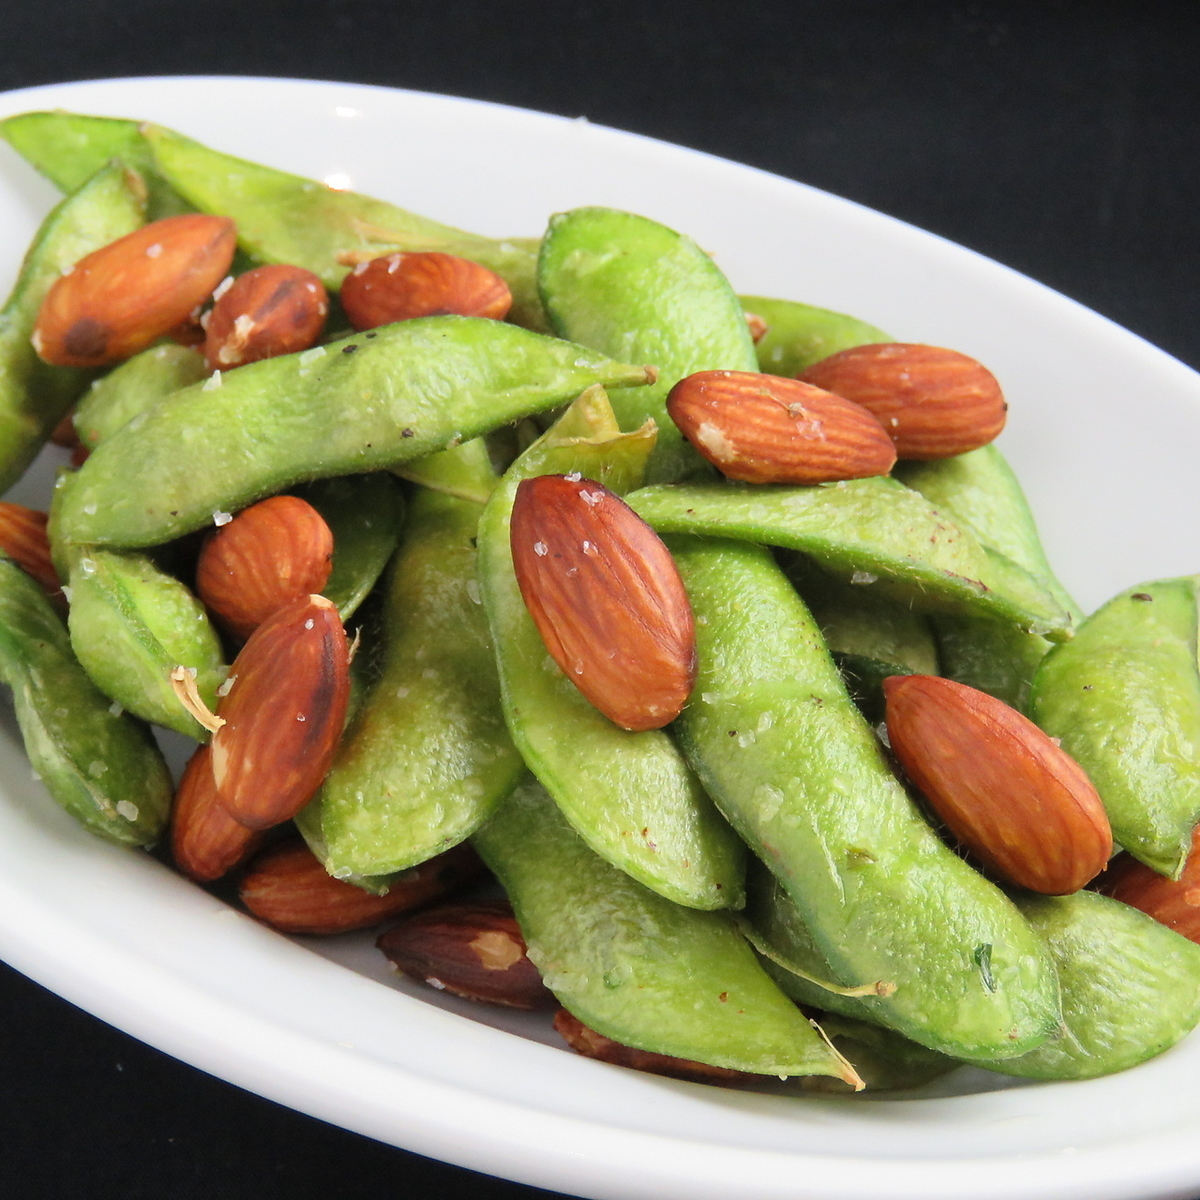 Deep fried green soybeans and almonds